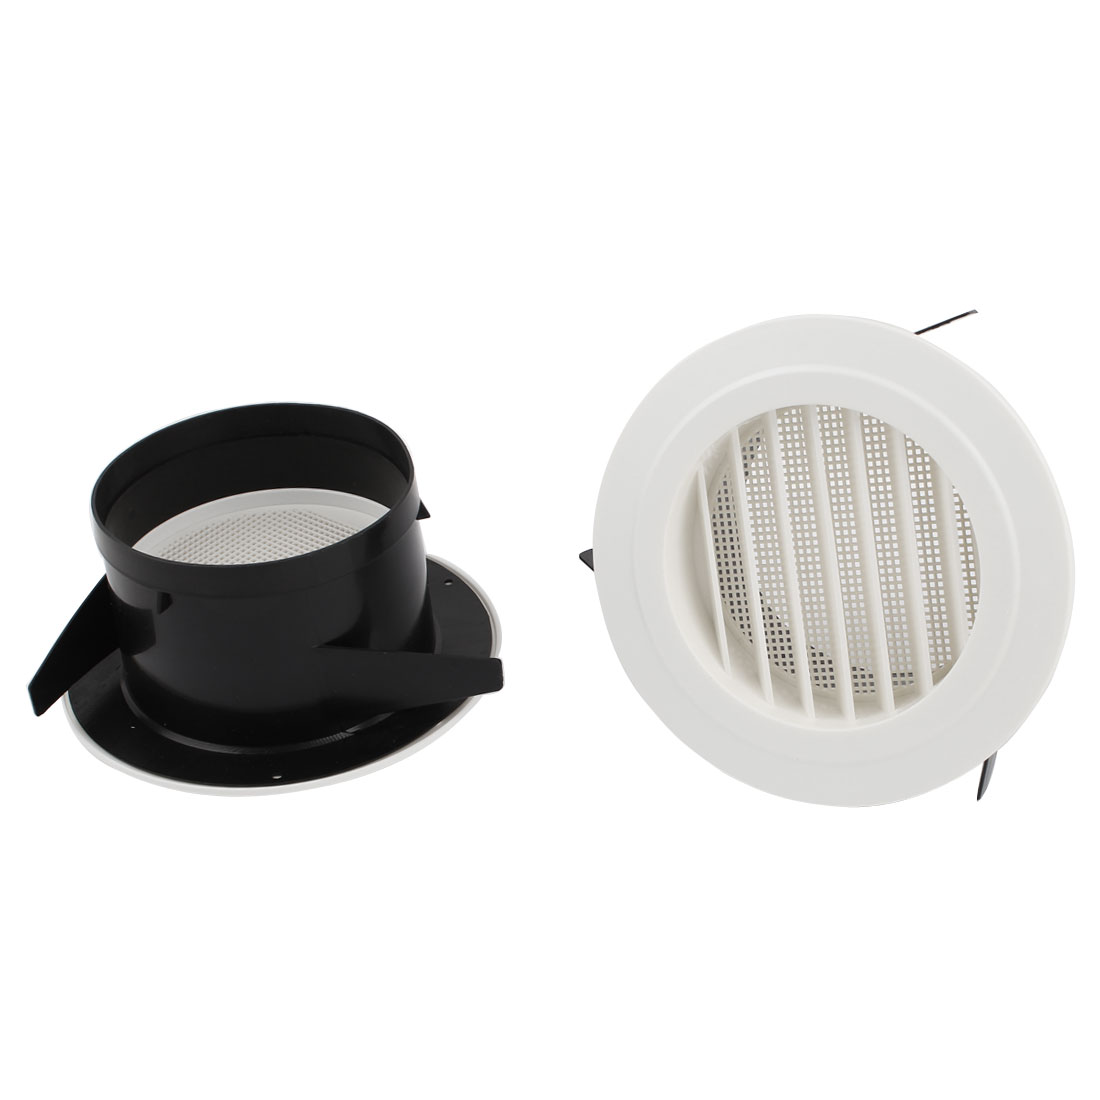 2pcs Black White Plastic 125mm Outer Dia Oblique Air Grilles Vent Valve